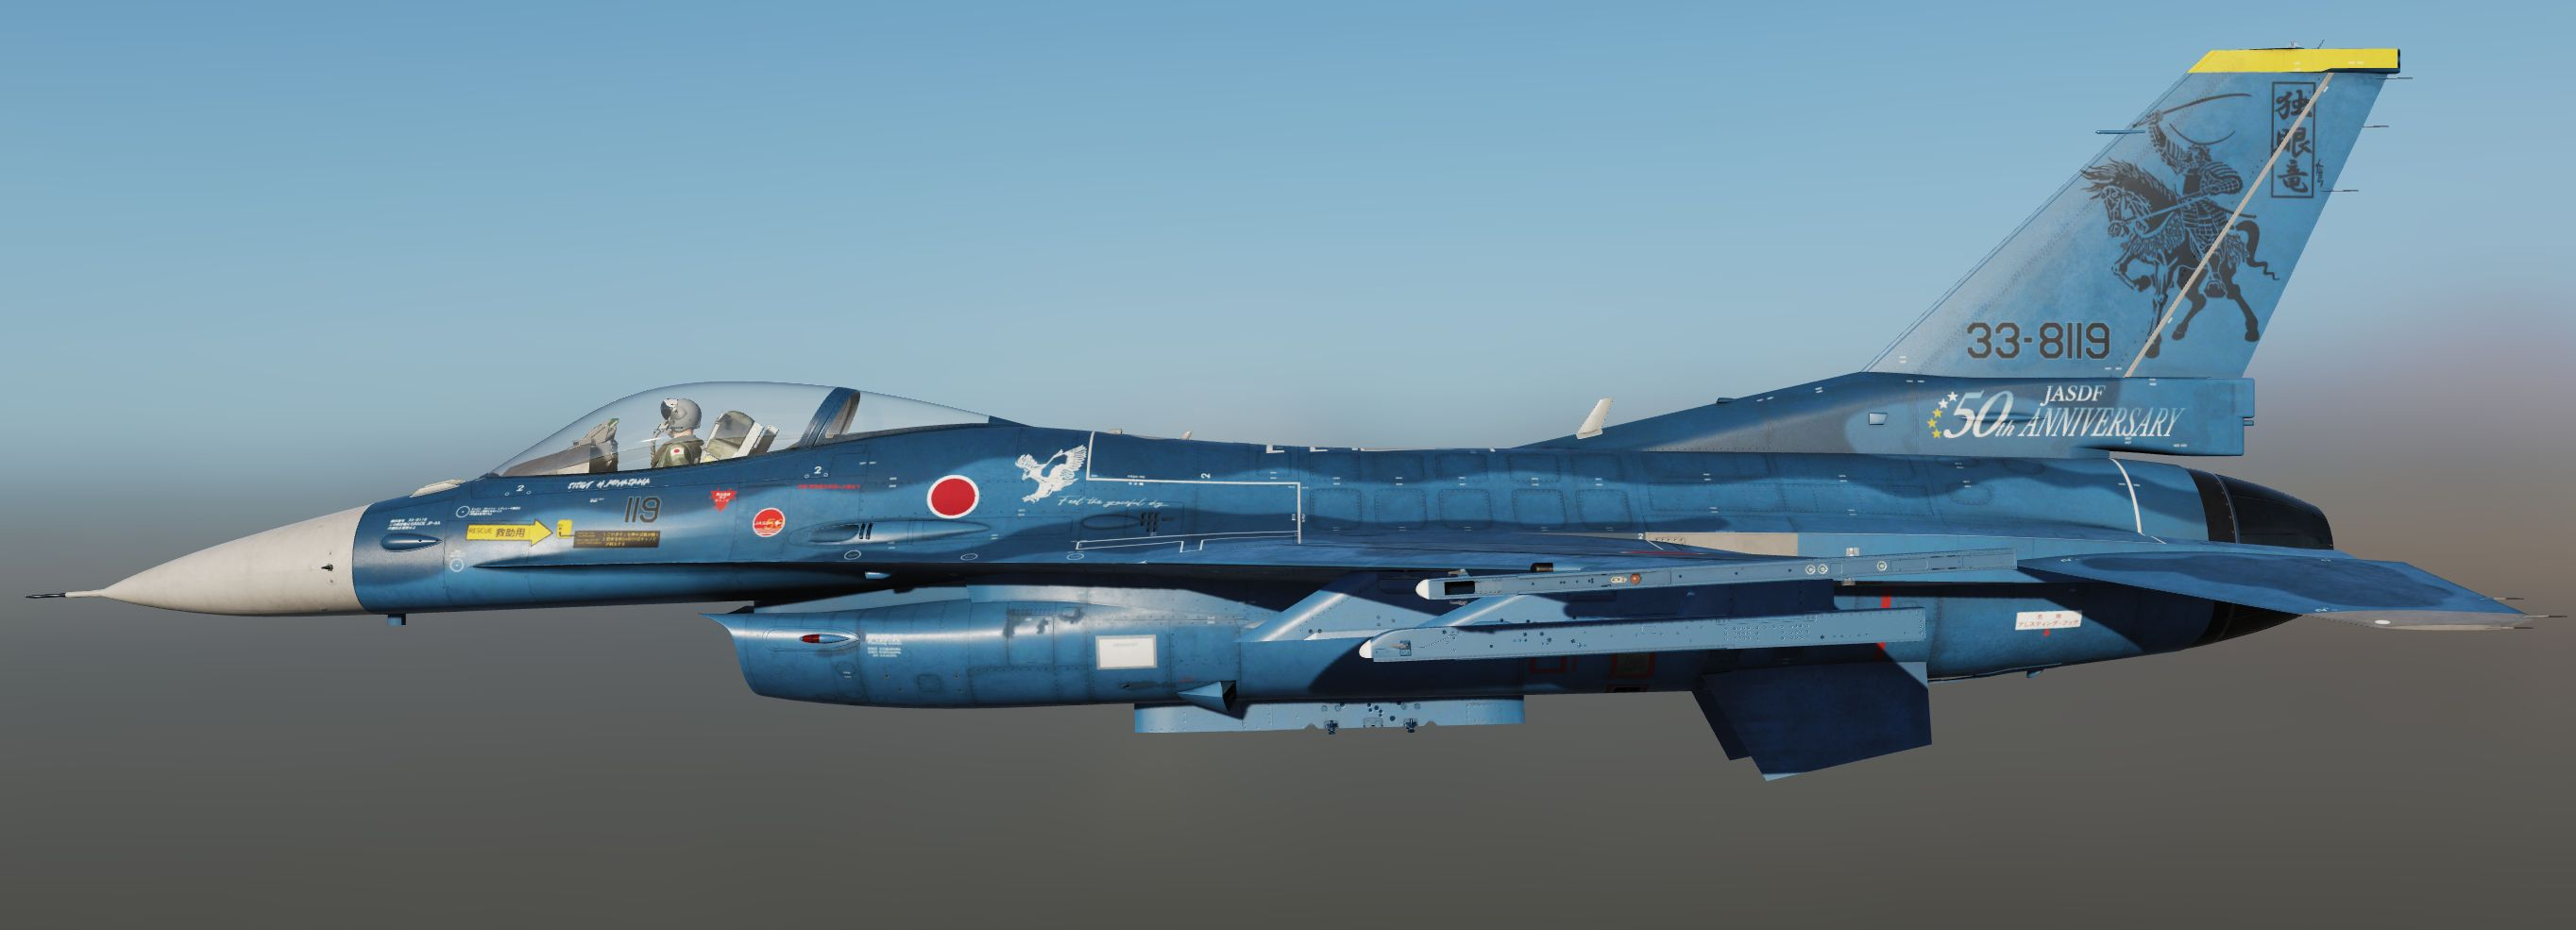 [Fictional] JASDF 21st FTS 33-8119 50th Anniversary V2.01